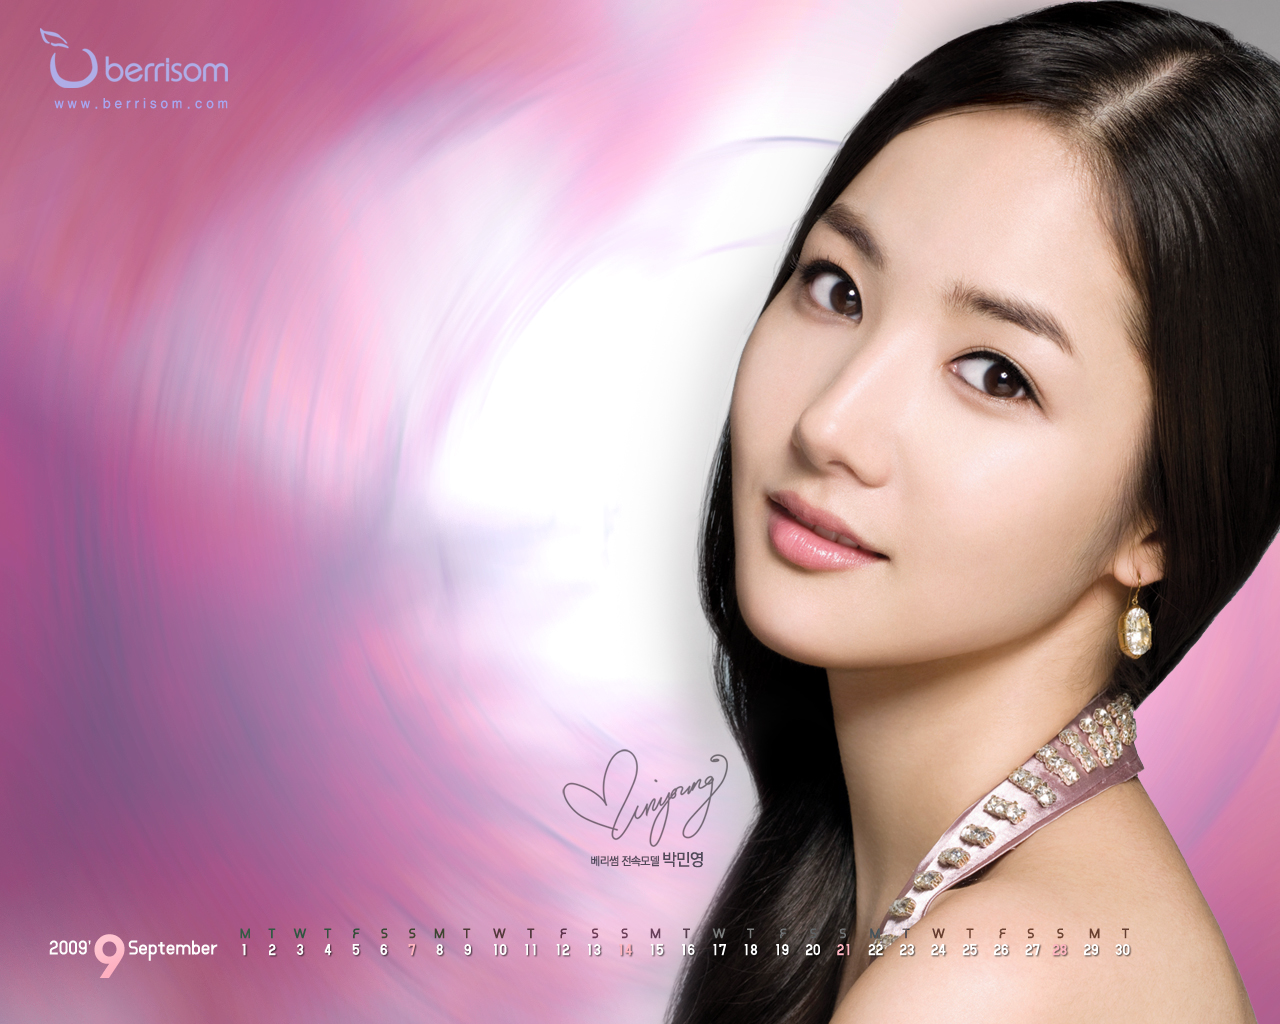 Charmian Chen 10 High Quality Park Min Young Wallpaper 1280x1024